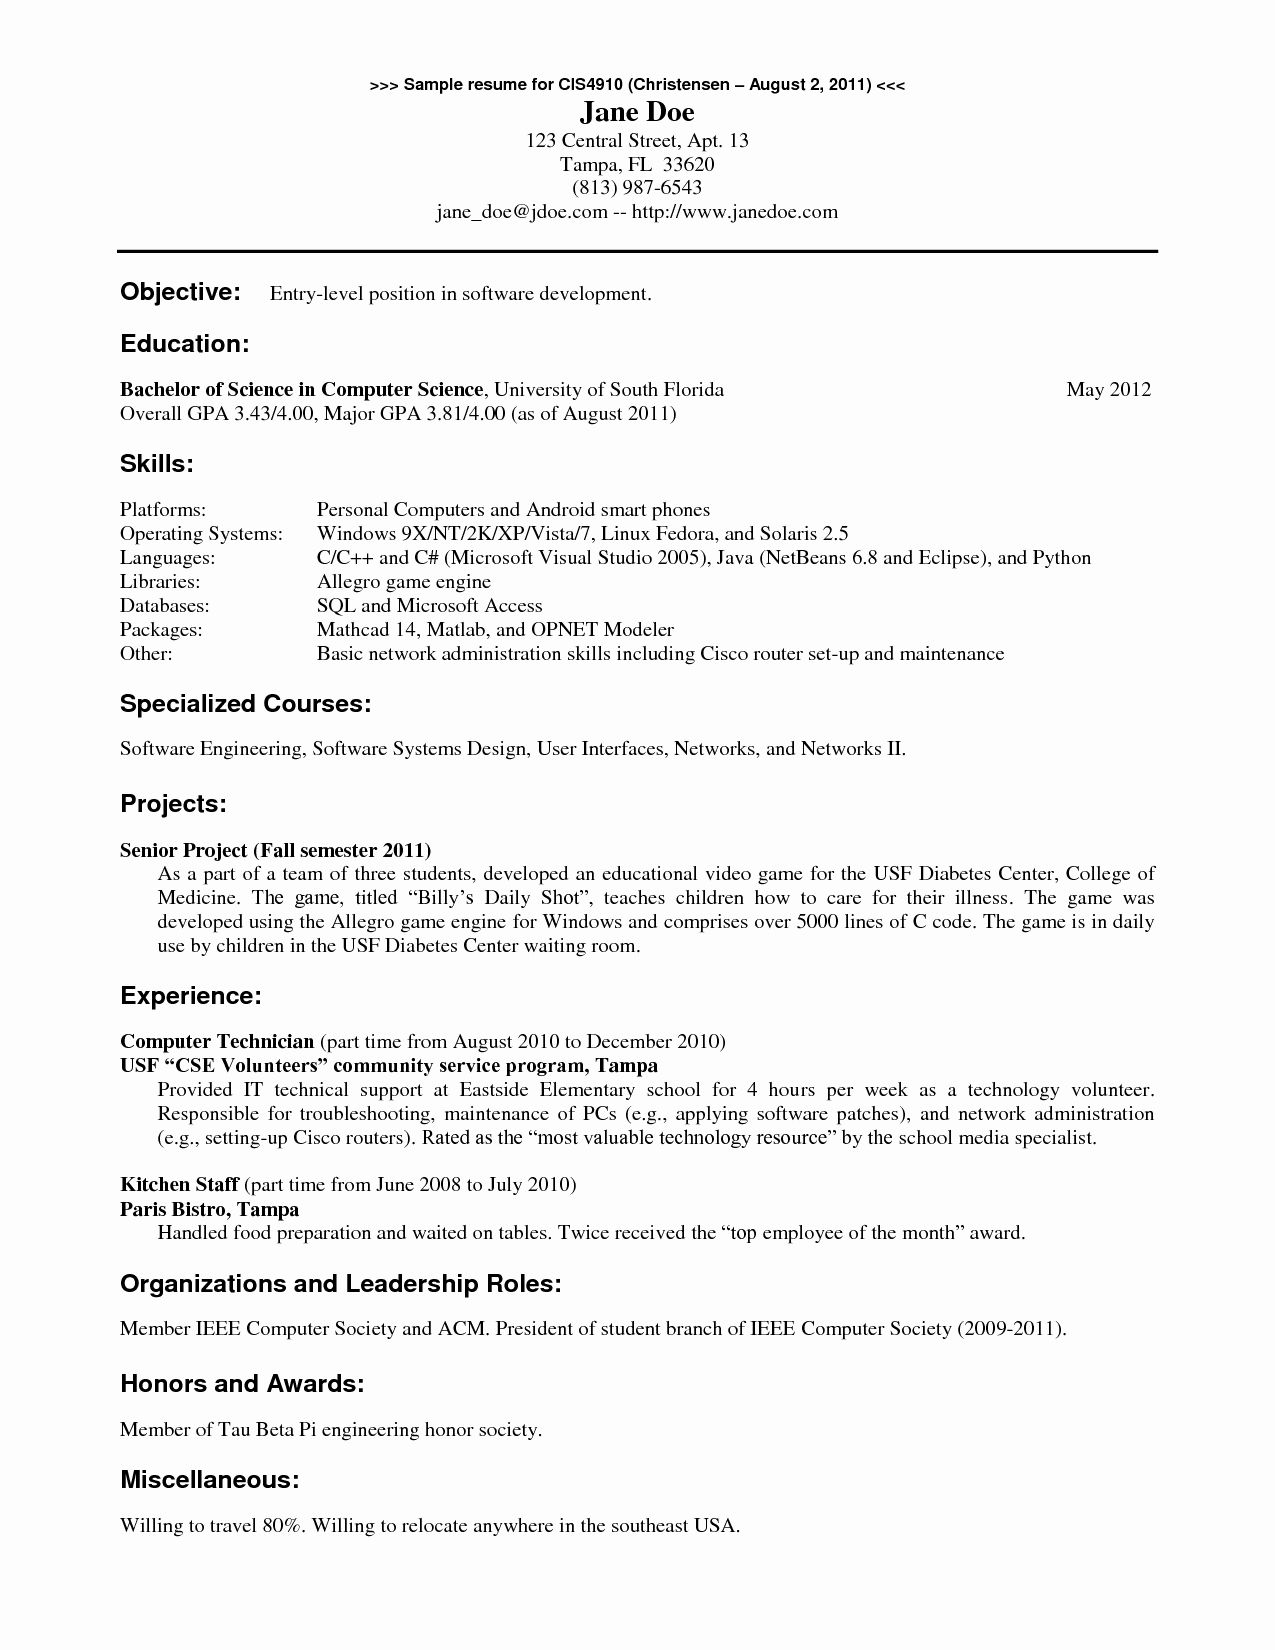 Computer Science Objective Resume New 12 13 Sample Puter